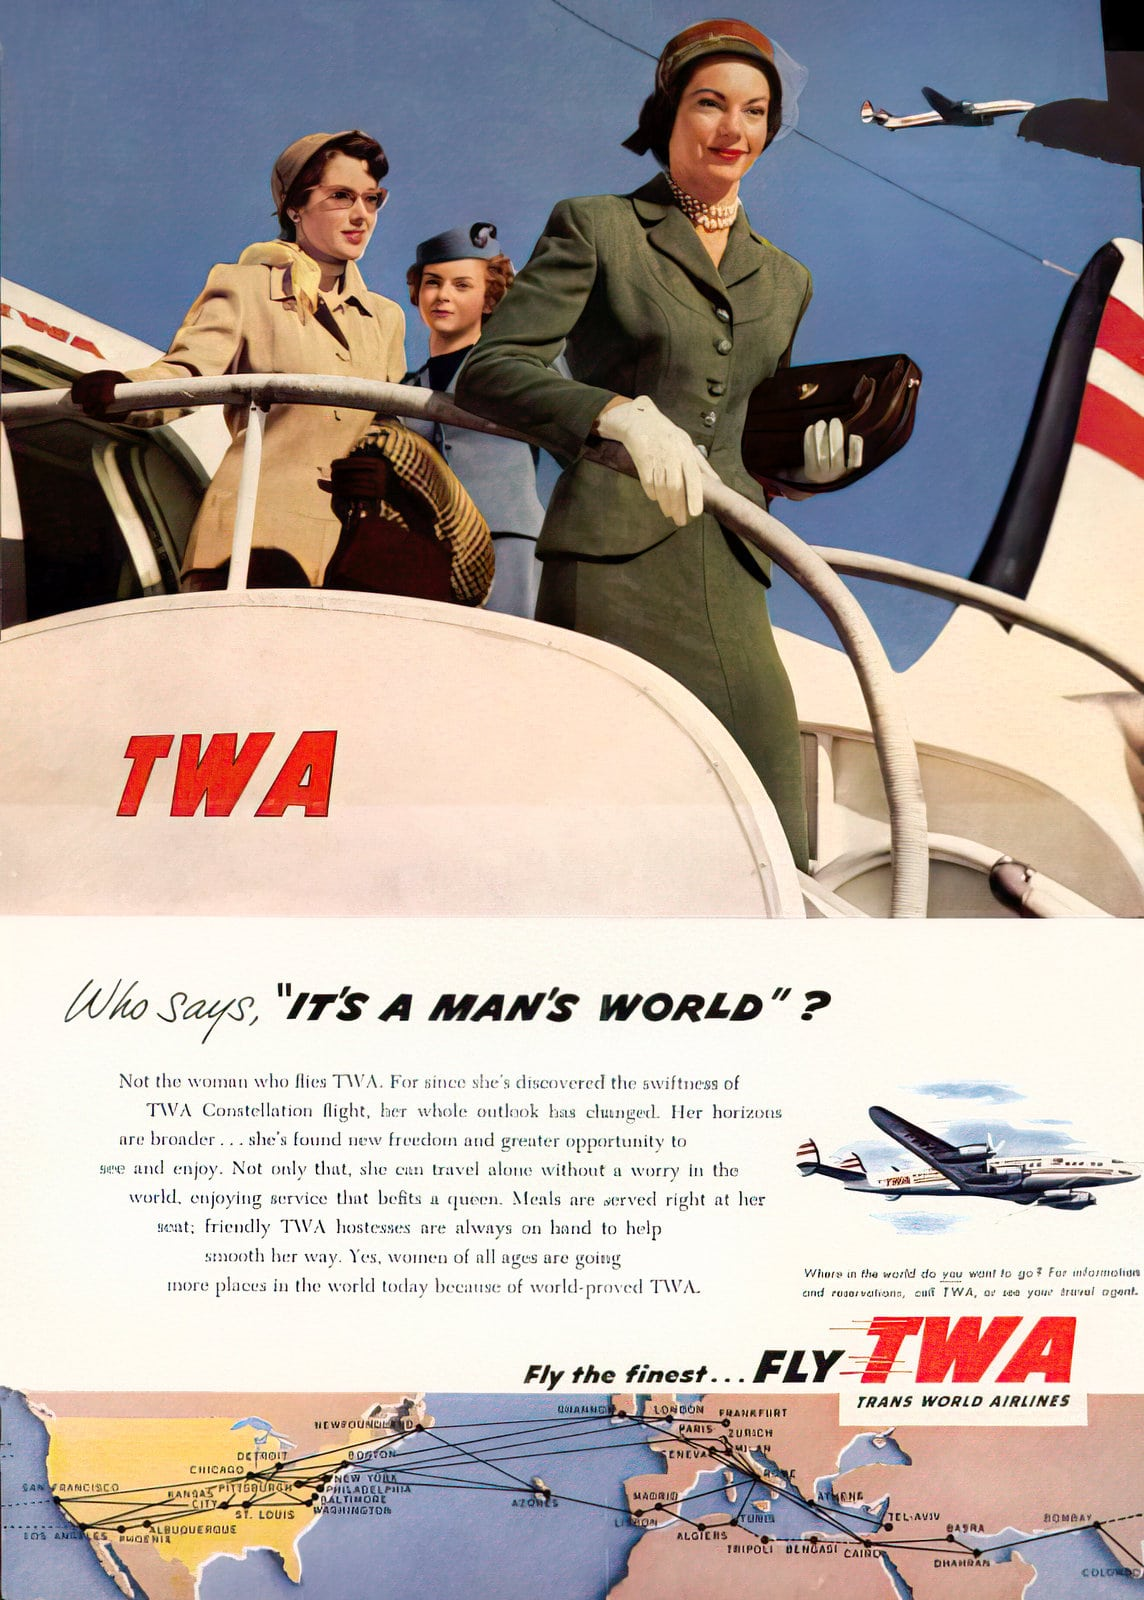 TWA It's a man's world - planes in the 1950s